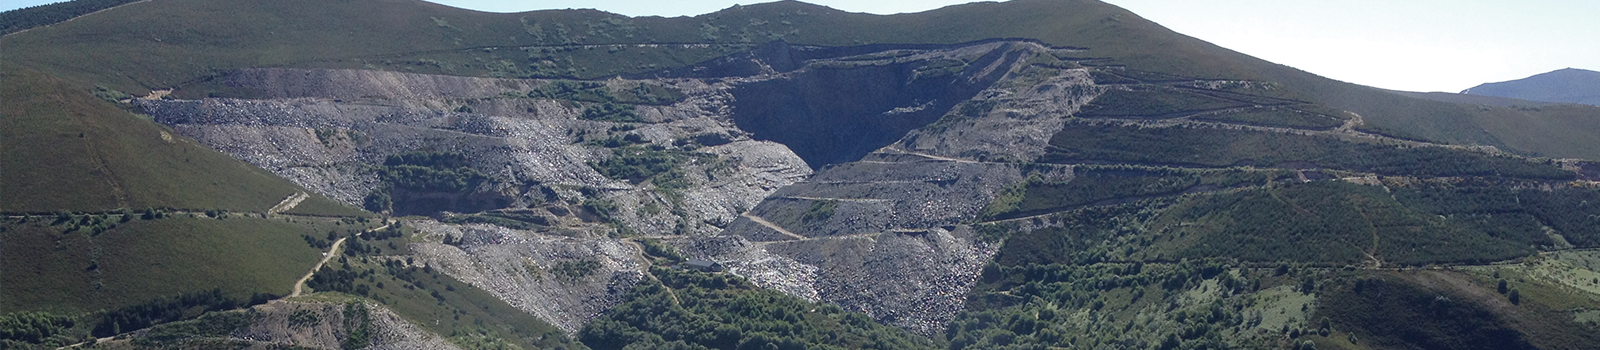 Spanish slate quarry